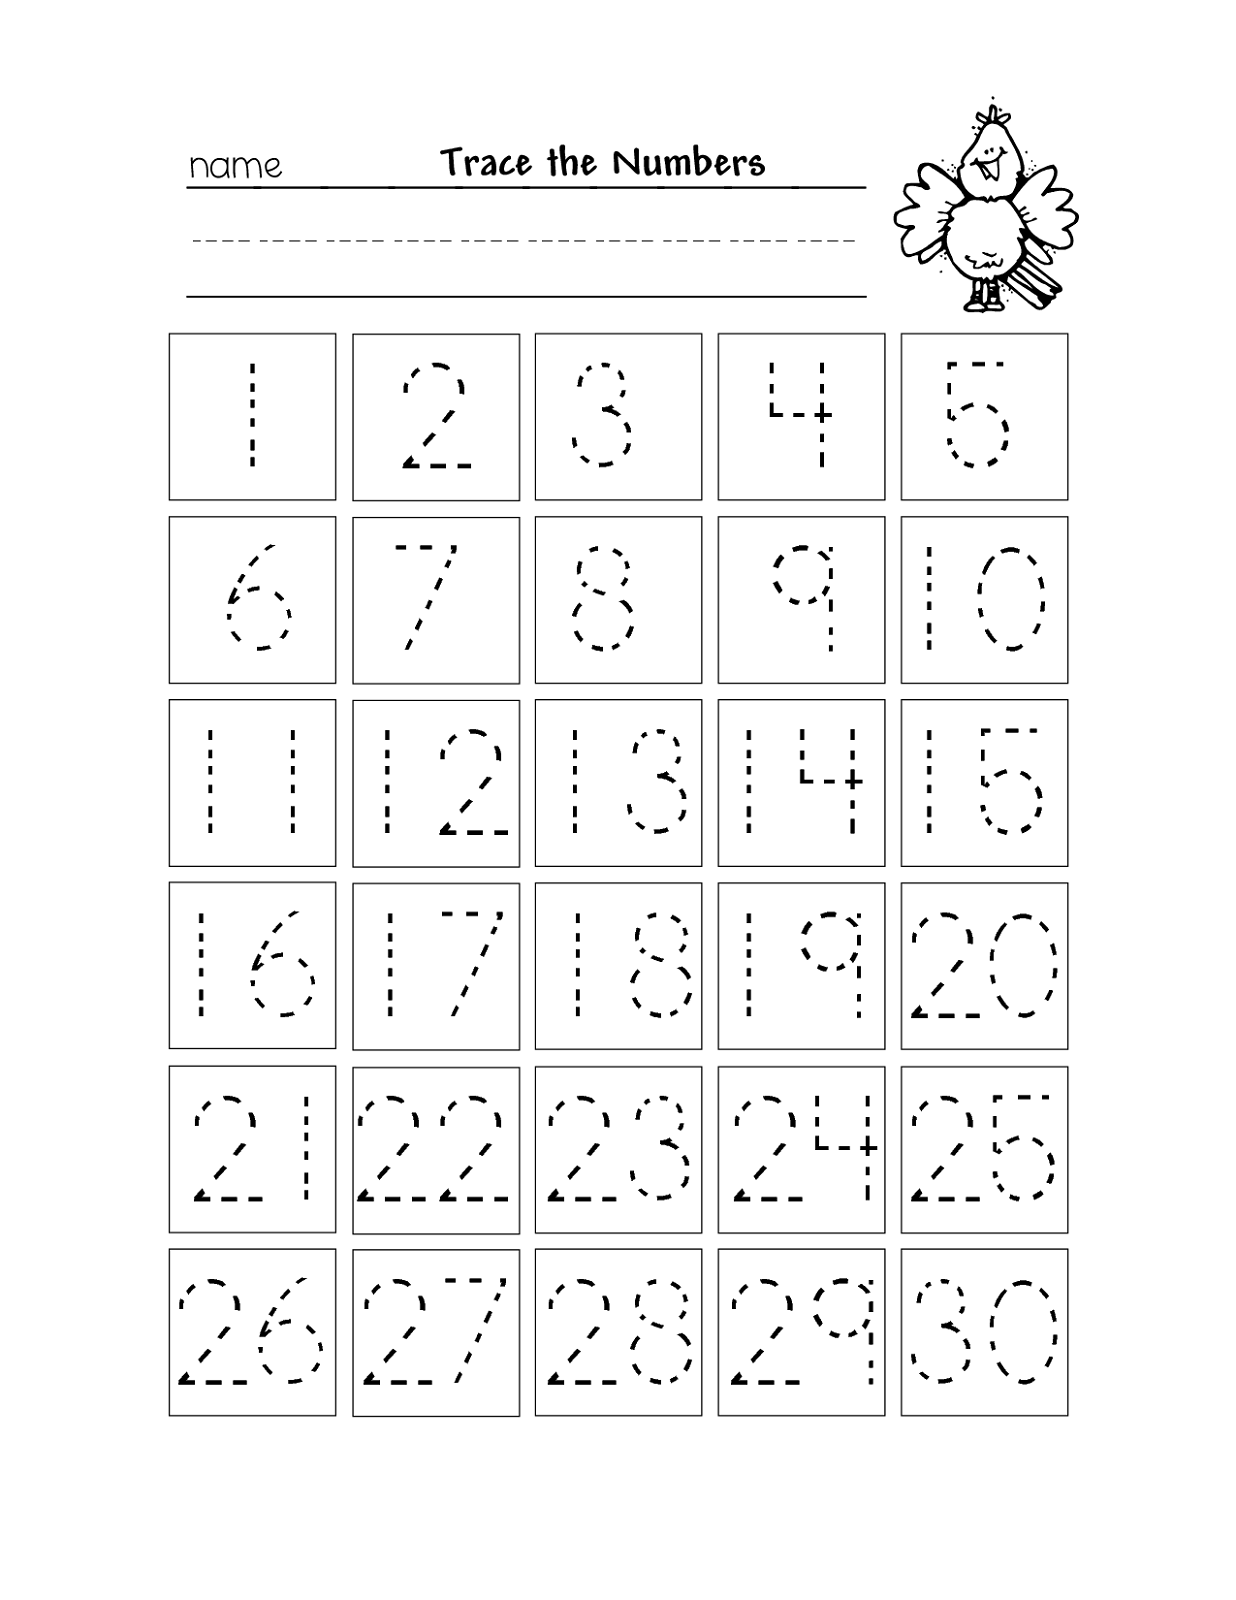 Worksheets Numbers Tracing trace the numbers 1 30 kiddo shelter kids worksheets printable shelter